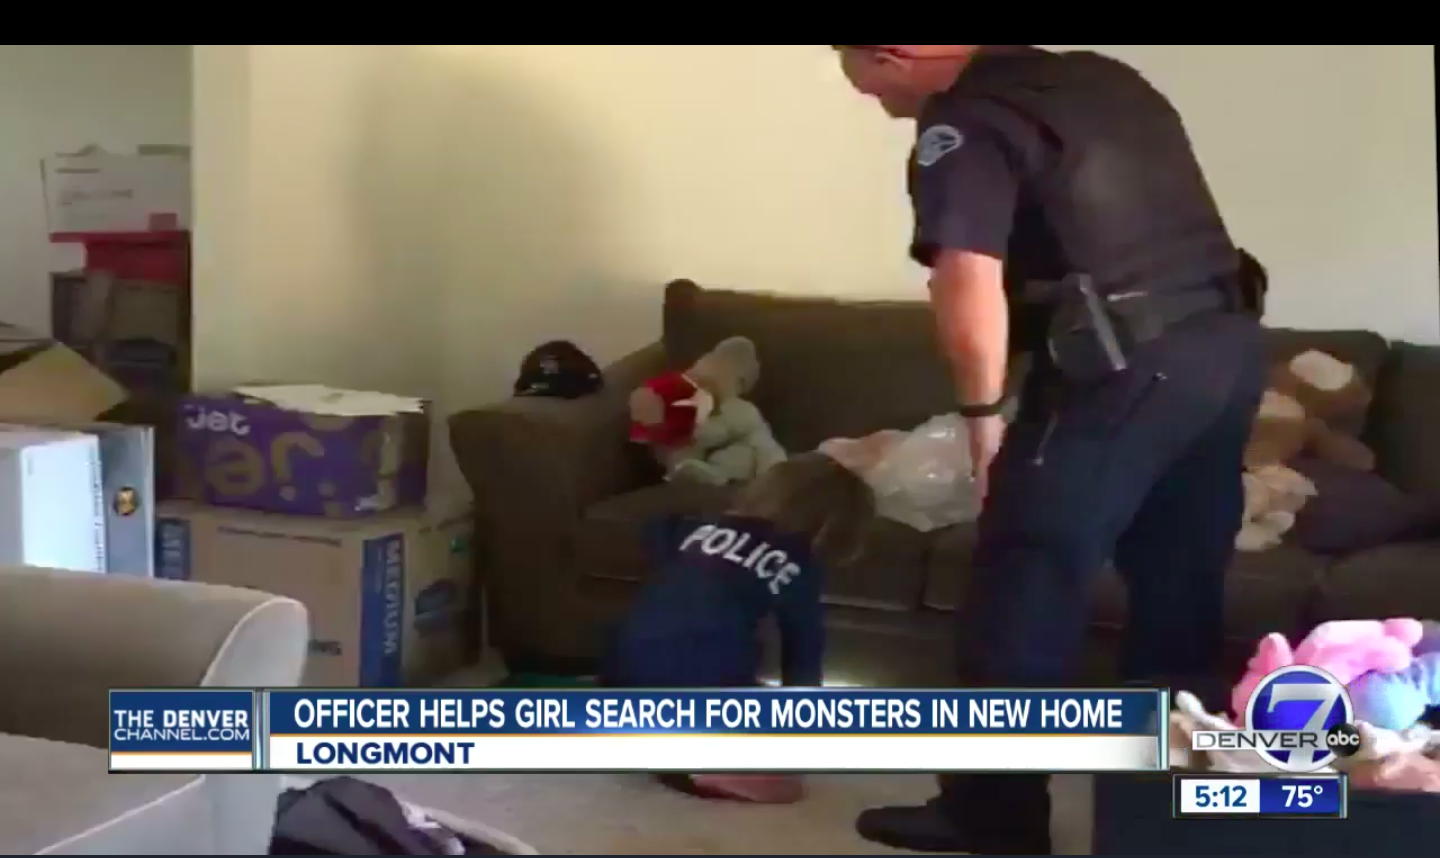 Police Officer Helps 4 Year Old Search For Monster